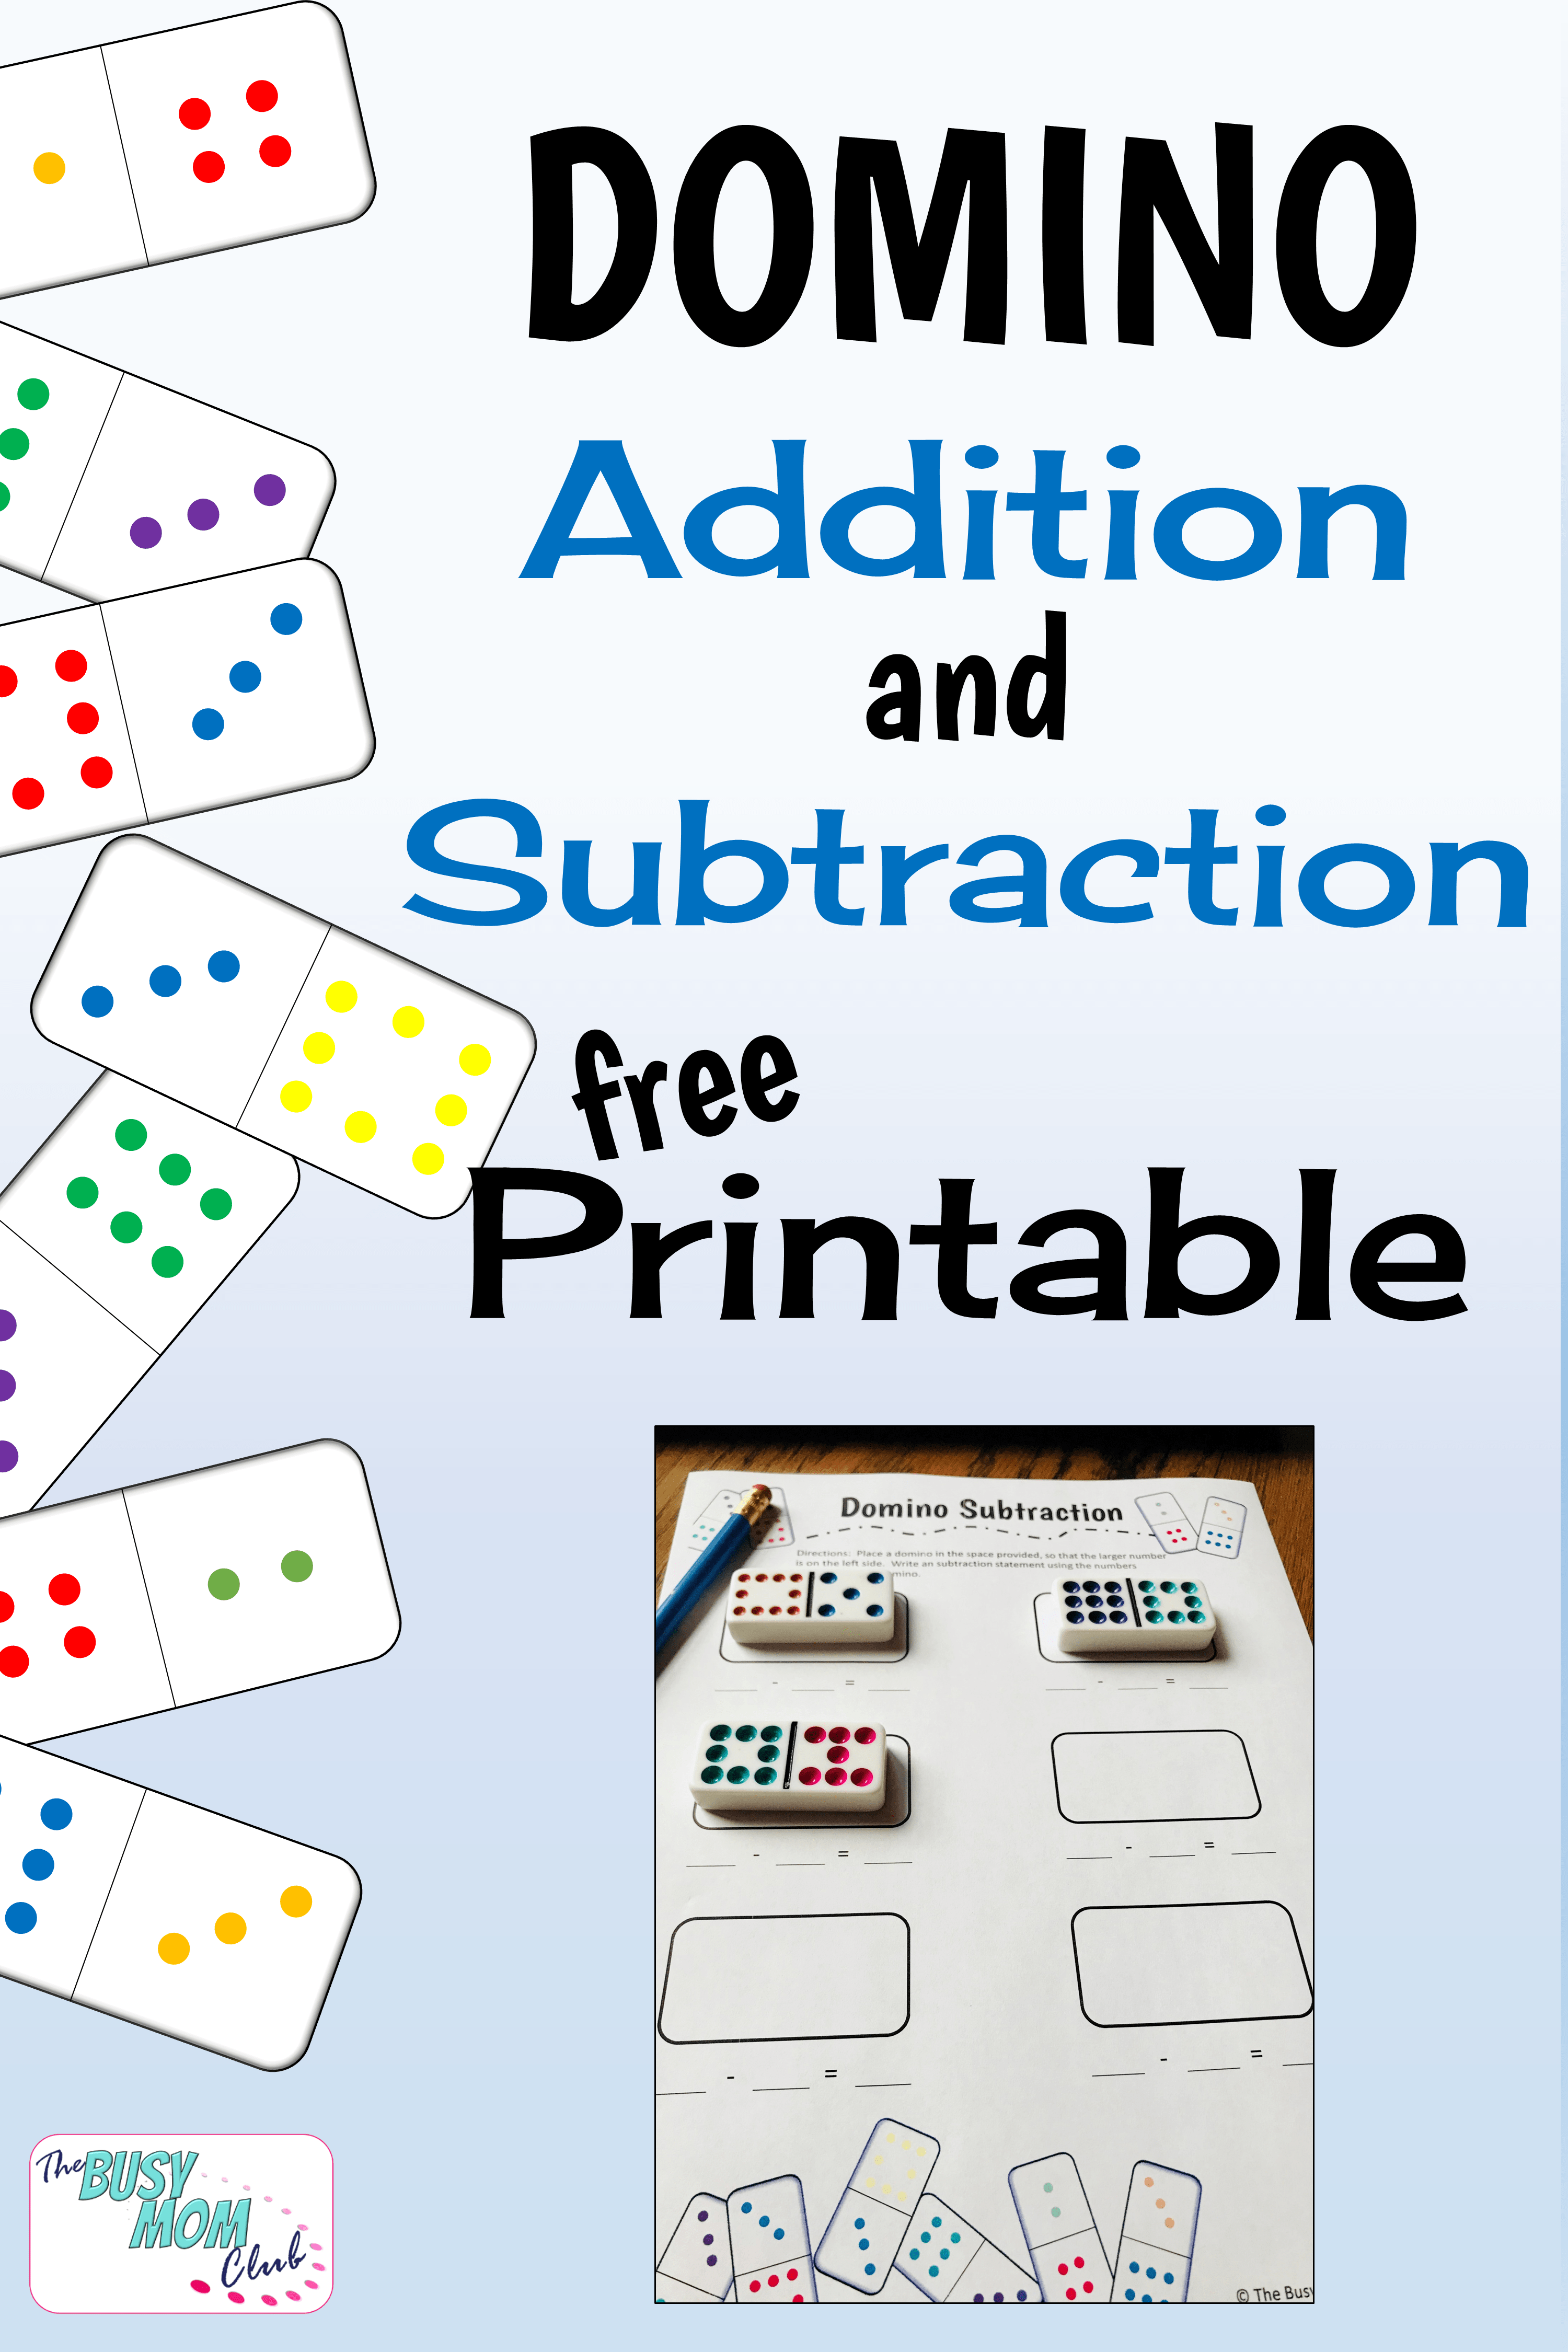 Domino Addition Worksheet Free   Printable Worksheets and Activities for  Teachers [ 4500 x 3000 Pixel ]